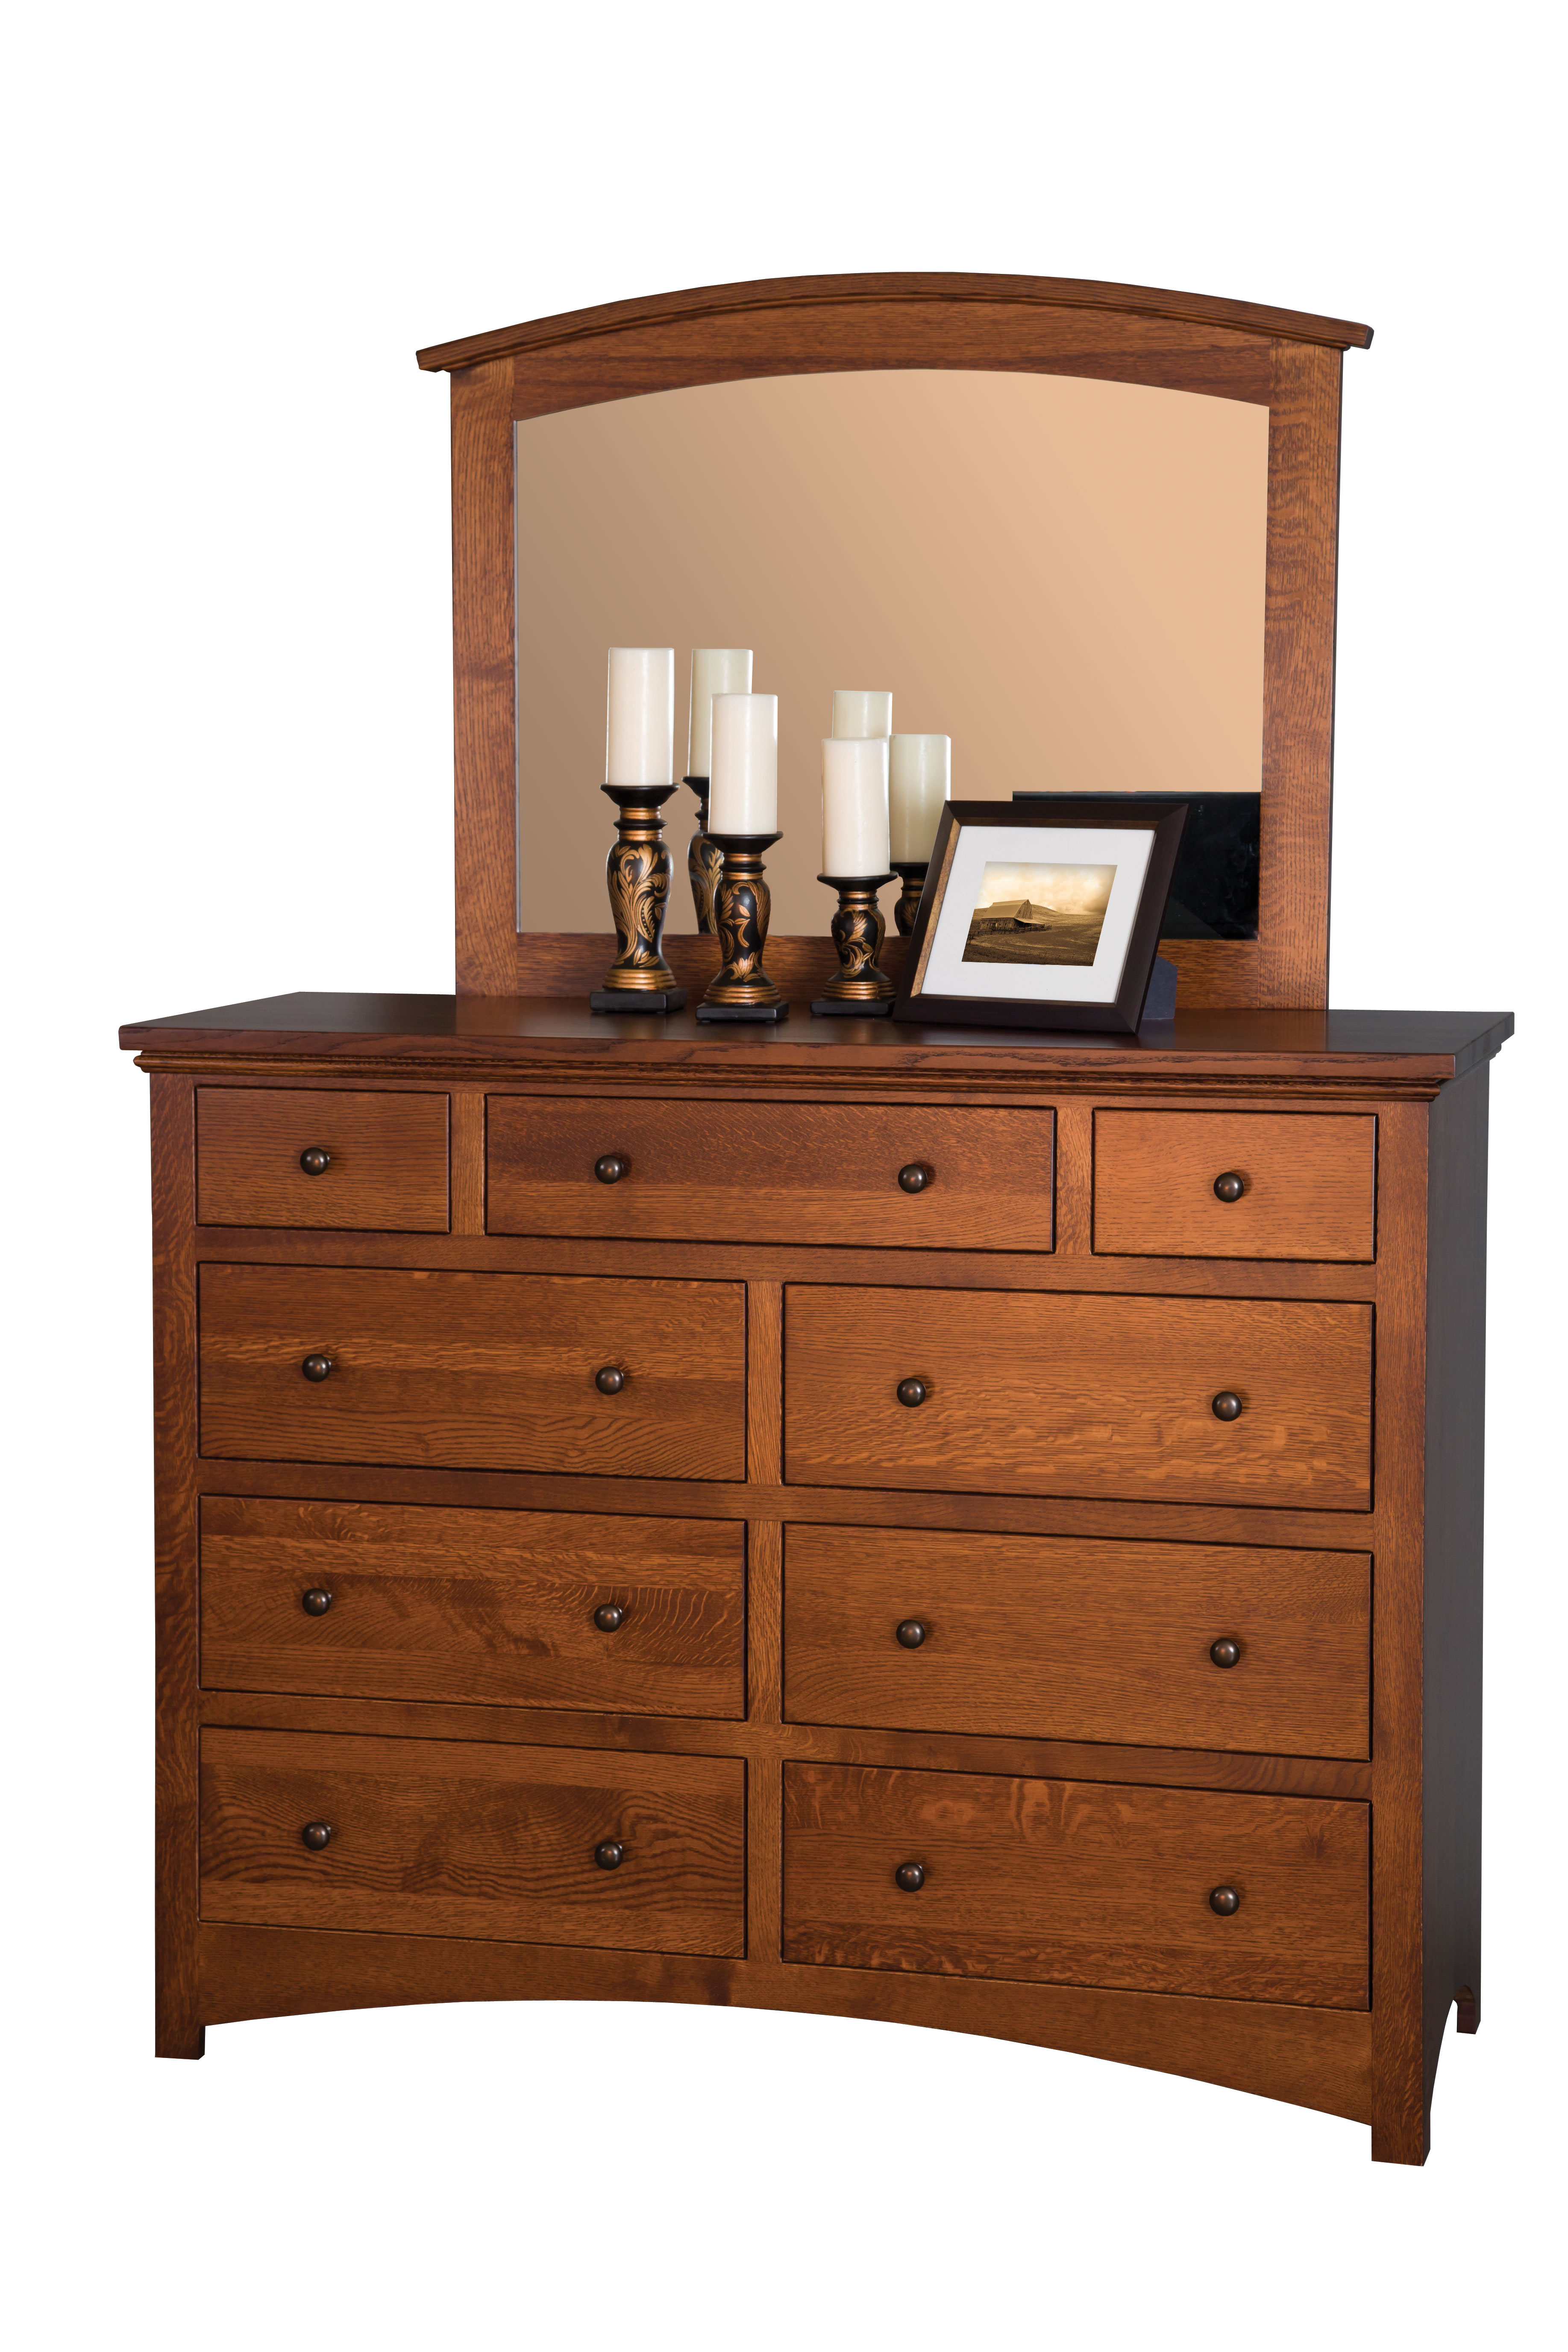 Buckeye economy dresser amish valley products for Amish furniture home of economy